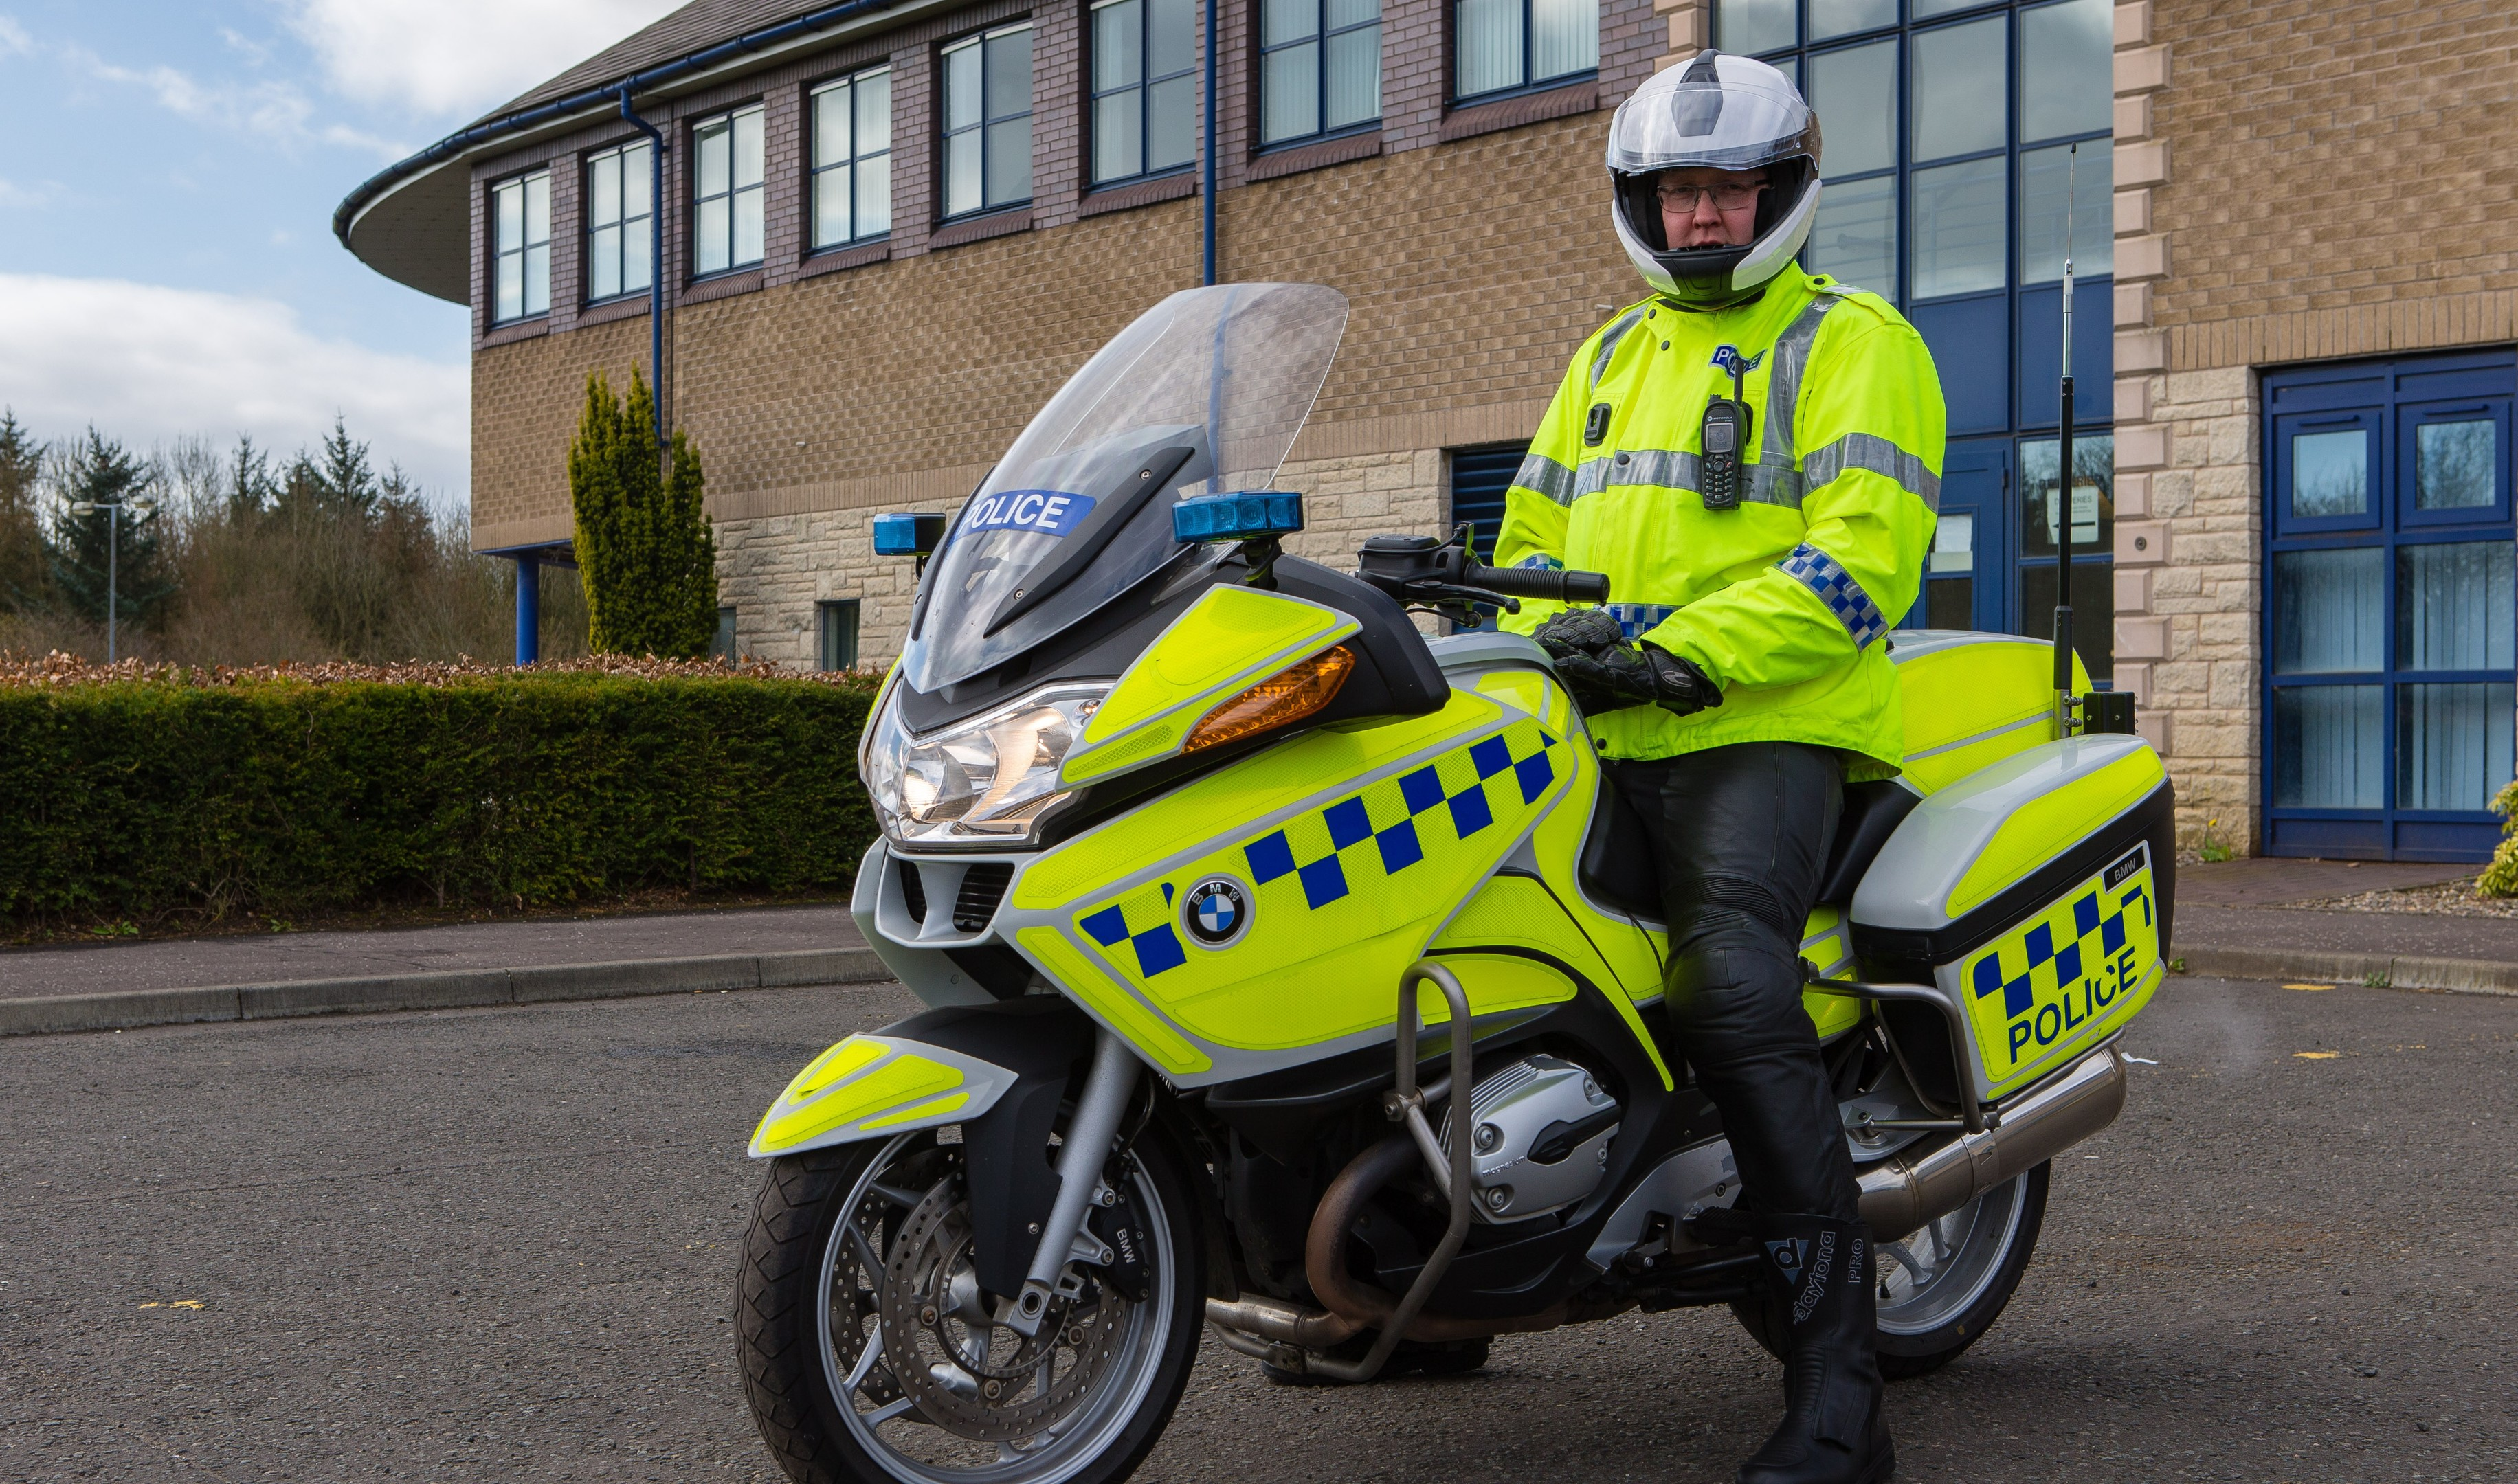 PC Alastair Purvis of Police Scotland Motorcycle Patrol is hoping to raise awareness of motorcyclists especially in the North East of Fife as summer approaches and to make drivers aware to keep an eye out for bikes as they visit the towns on the coast. Increased visible presence will be noticed.